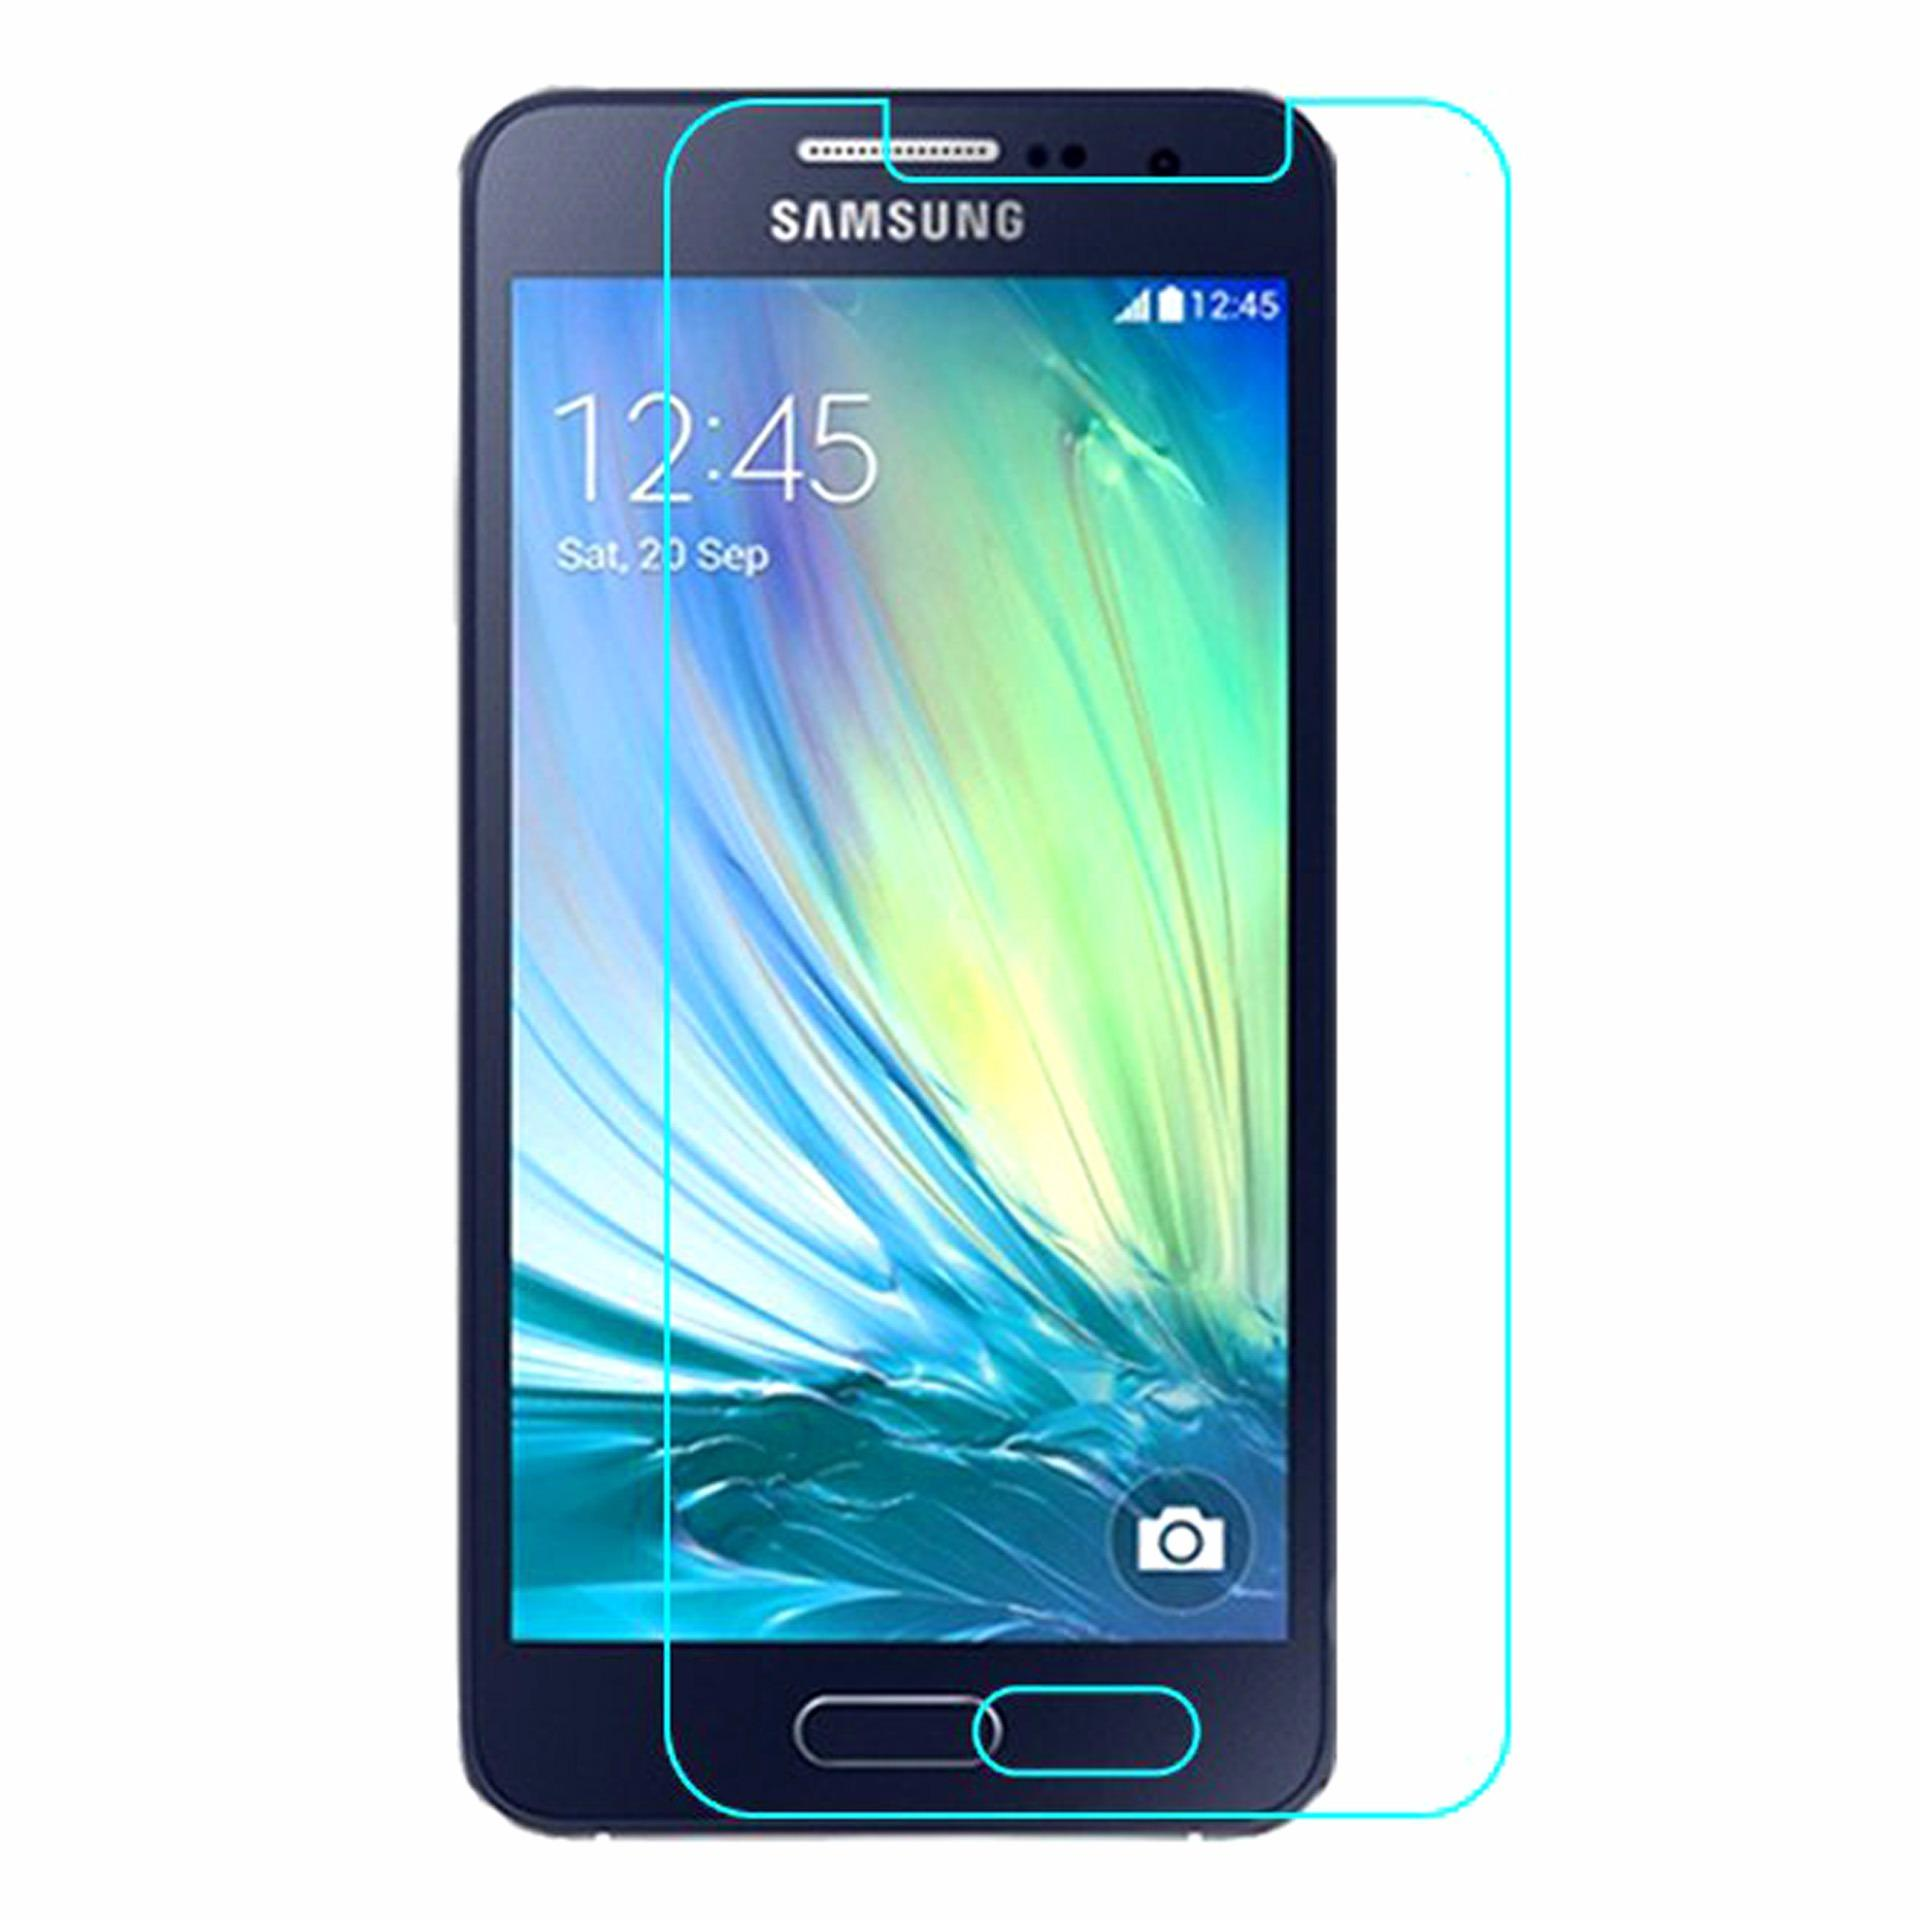 Vn Samsung Galaxy A3 (2015) / A300 / 4G LTE / Duos Tempered Glass